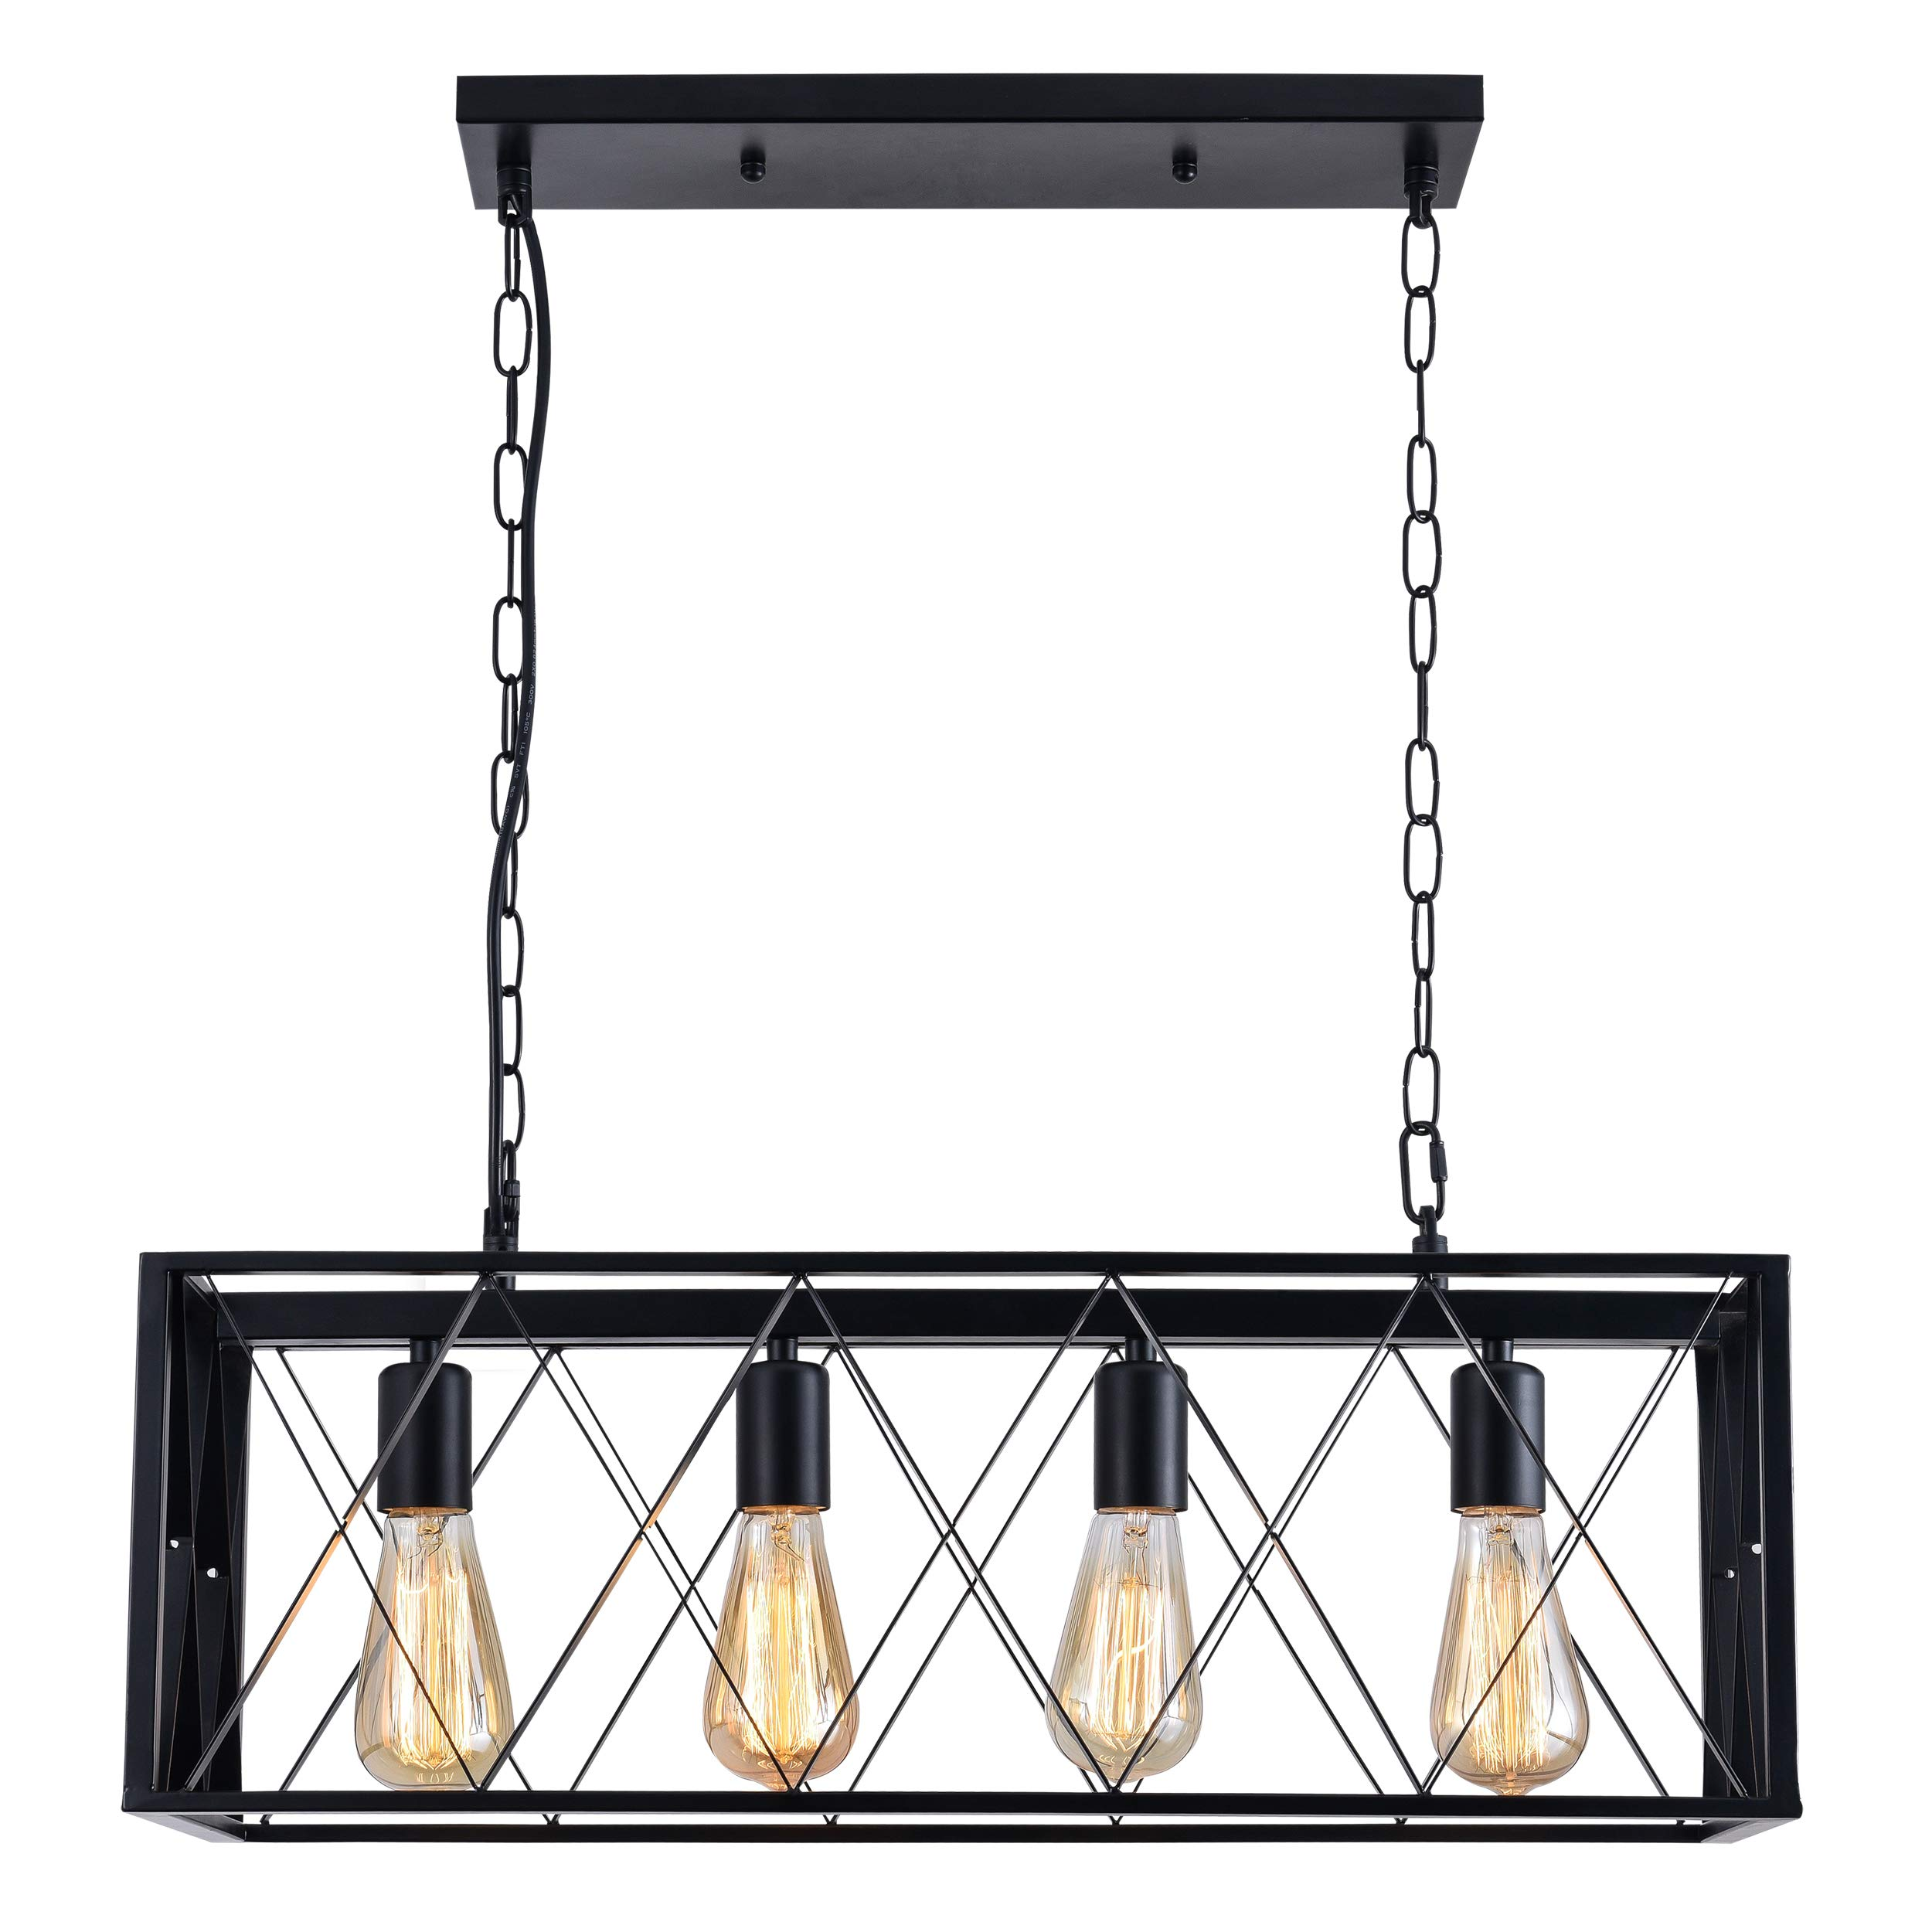 ISRAMP Kitchen Island Lighting Fixtures, 4-Light Rectangle Iron Matte Black Shade Industrial Pendant Light Rustic Farmhouse Chandelier by ISRAMP (Image #1)